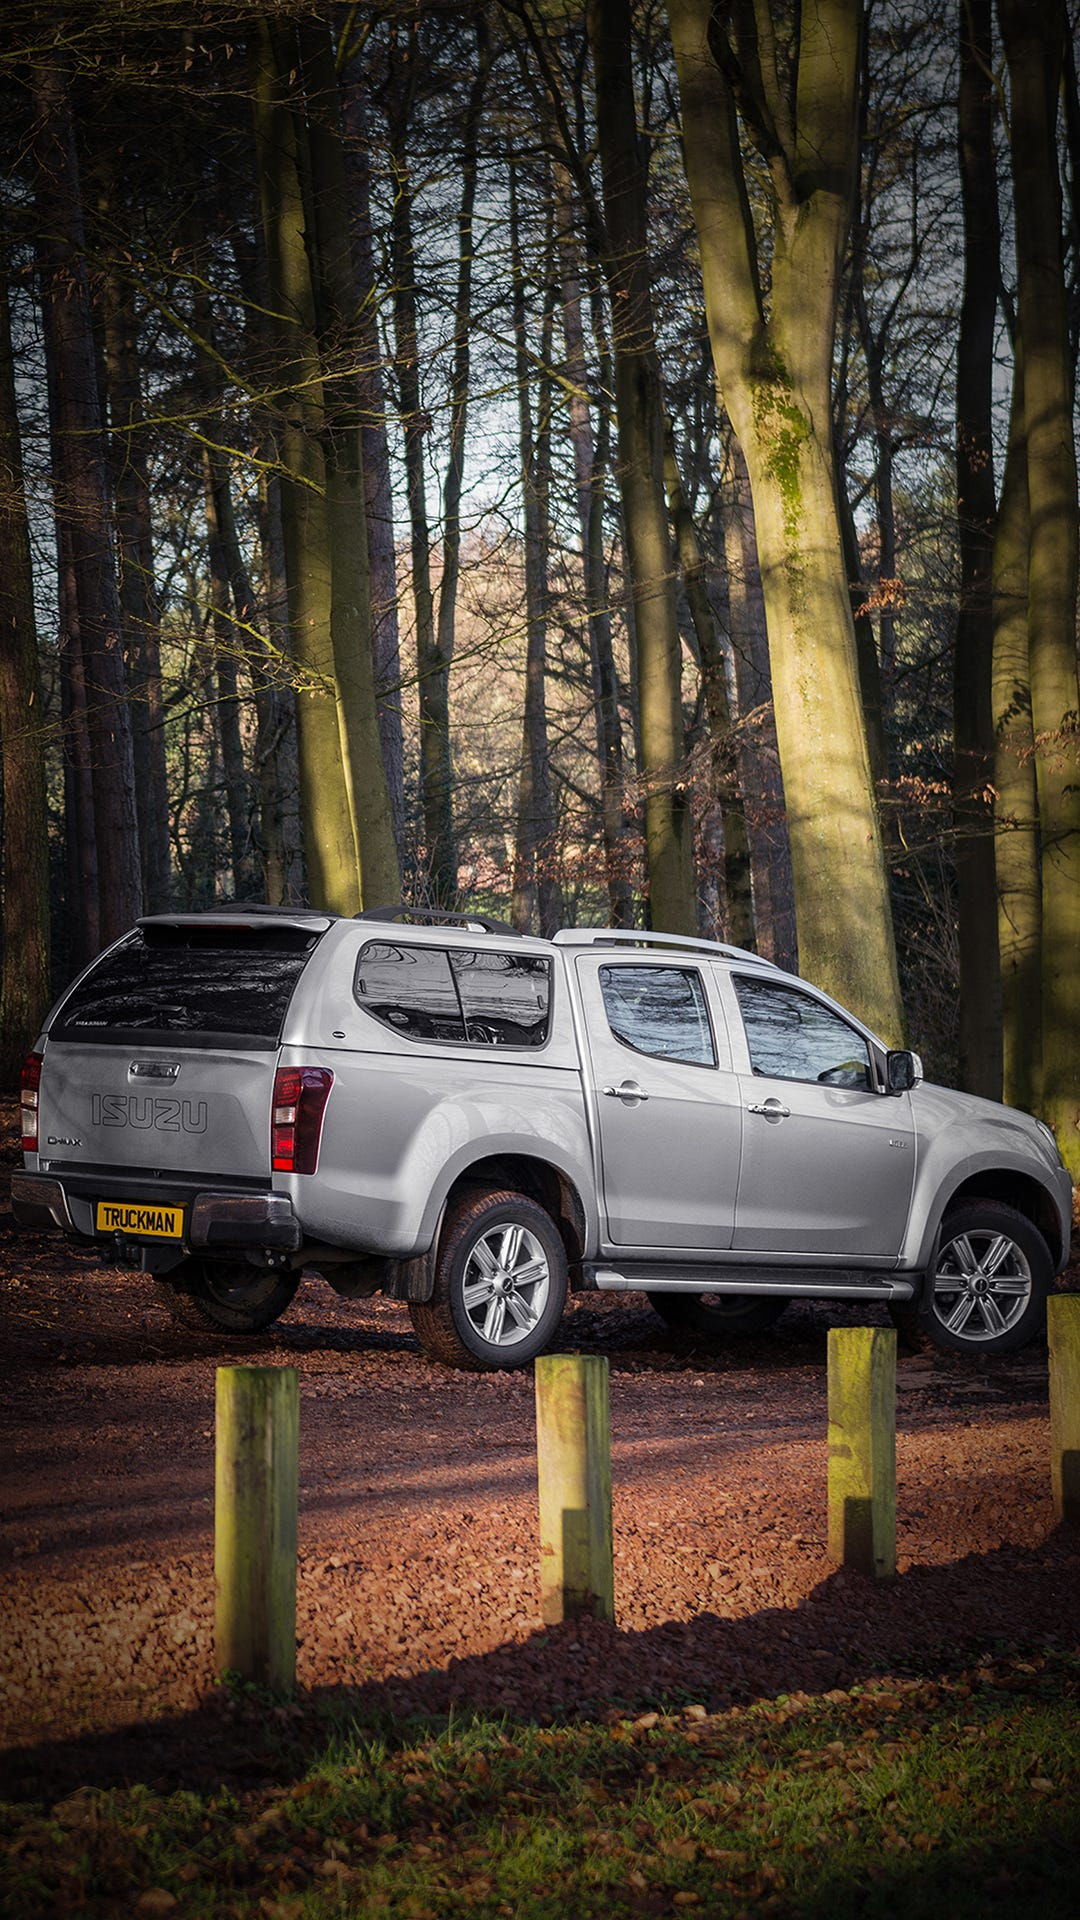 Isuzu D-Max Double Cab Fitted With a Truckman GLS Hardtop Canopy (Portrait)